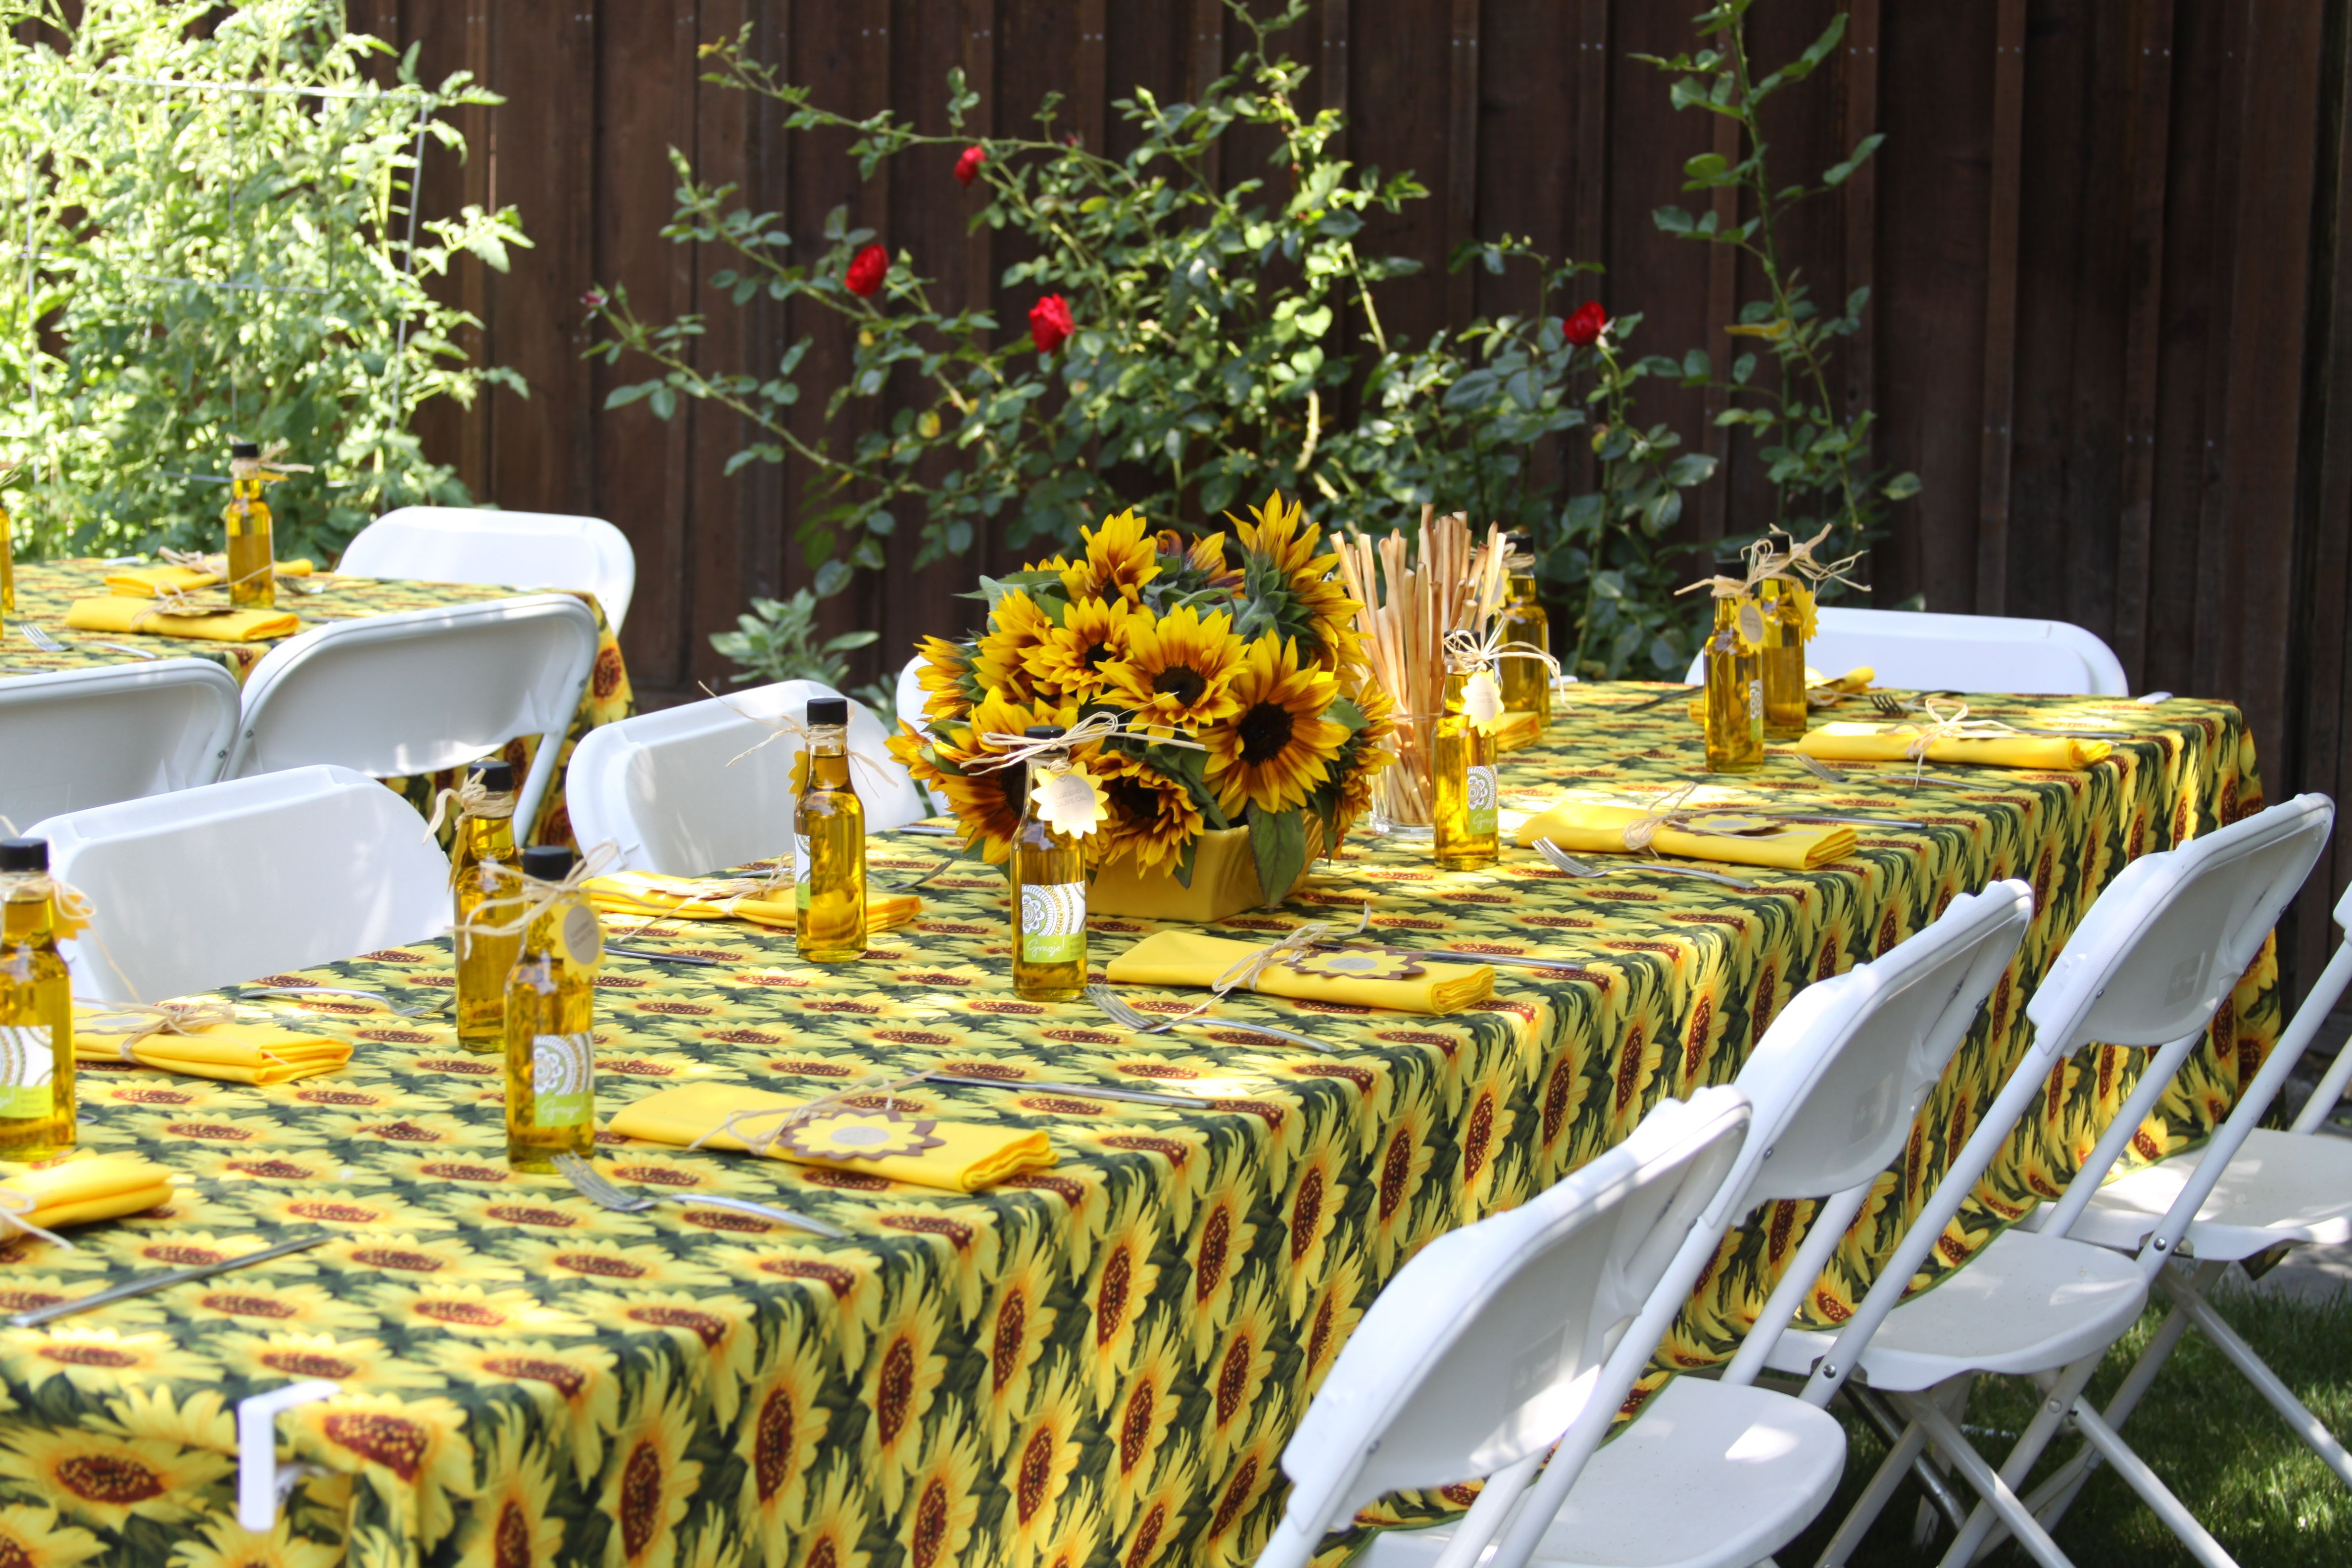 Tuscan, Rustic Italian Themed Bridal Shower With Sunflower Tablecloths